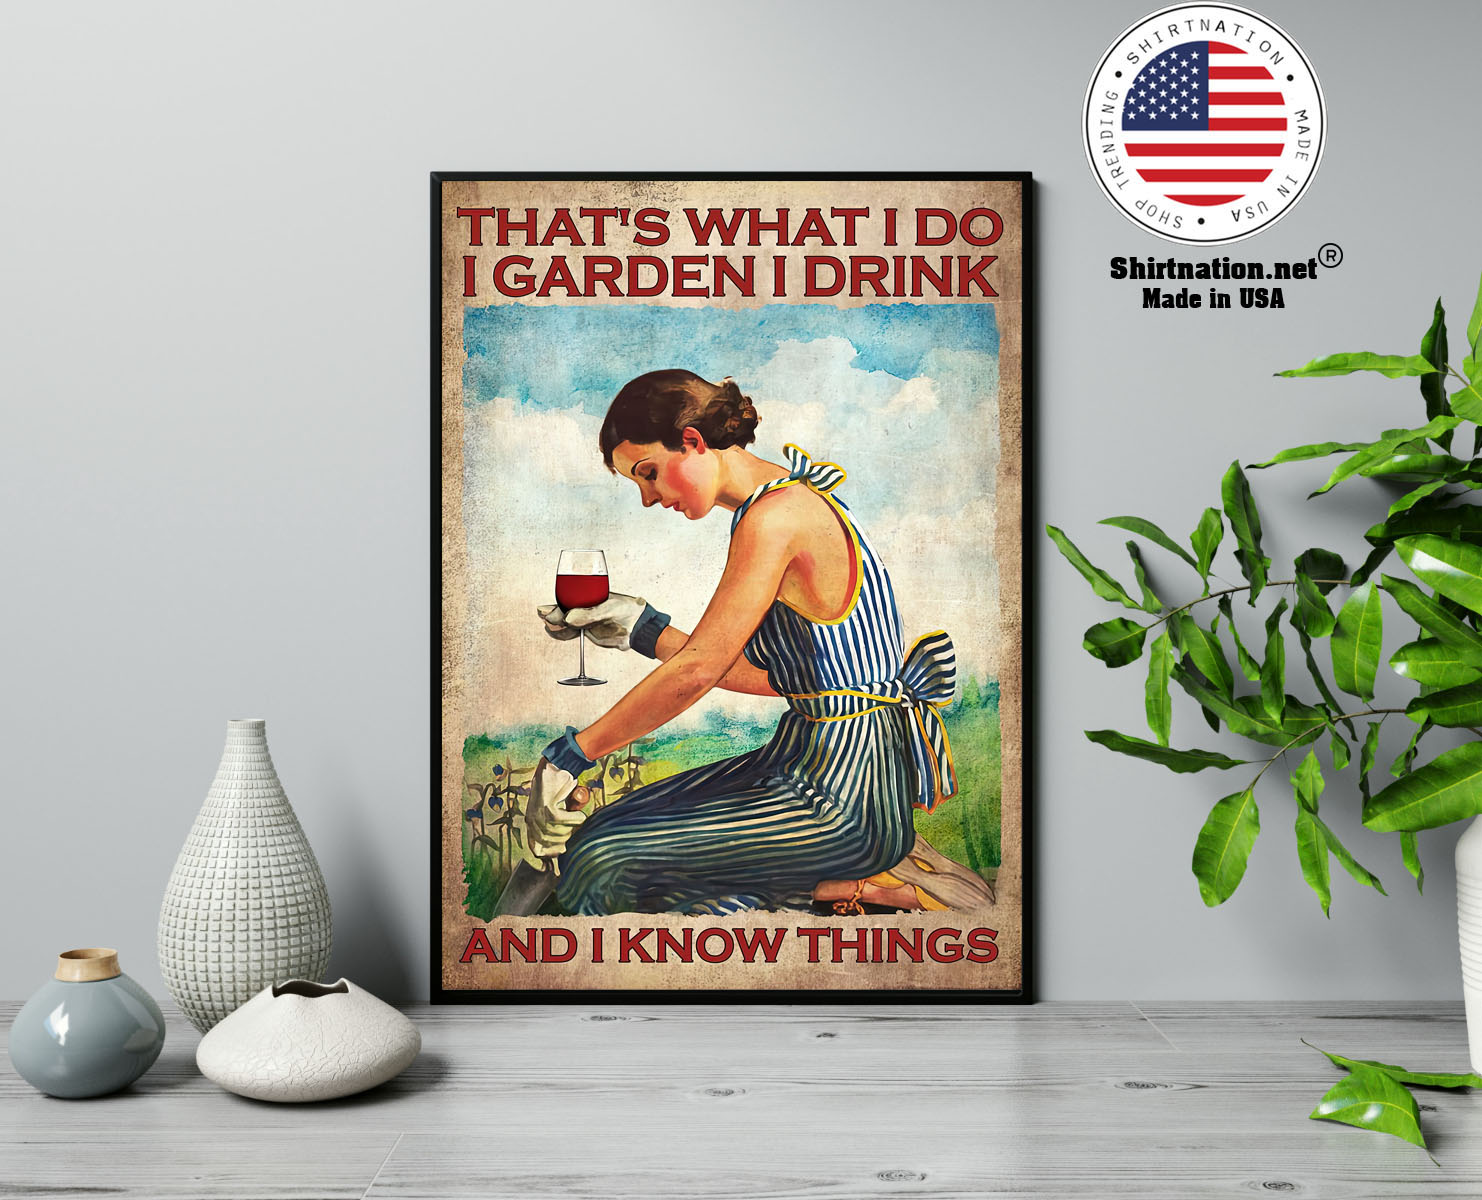 Wine Thats what I do I garden I drink and I know things poster 13